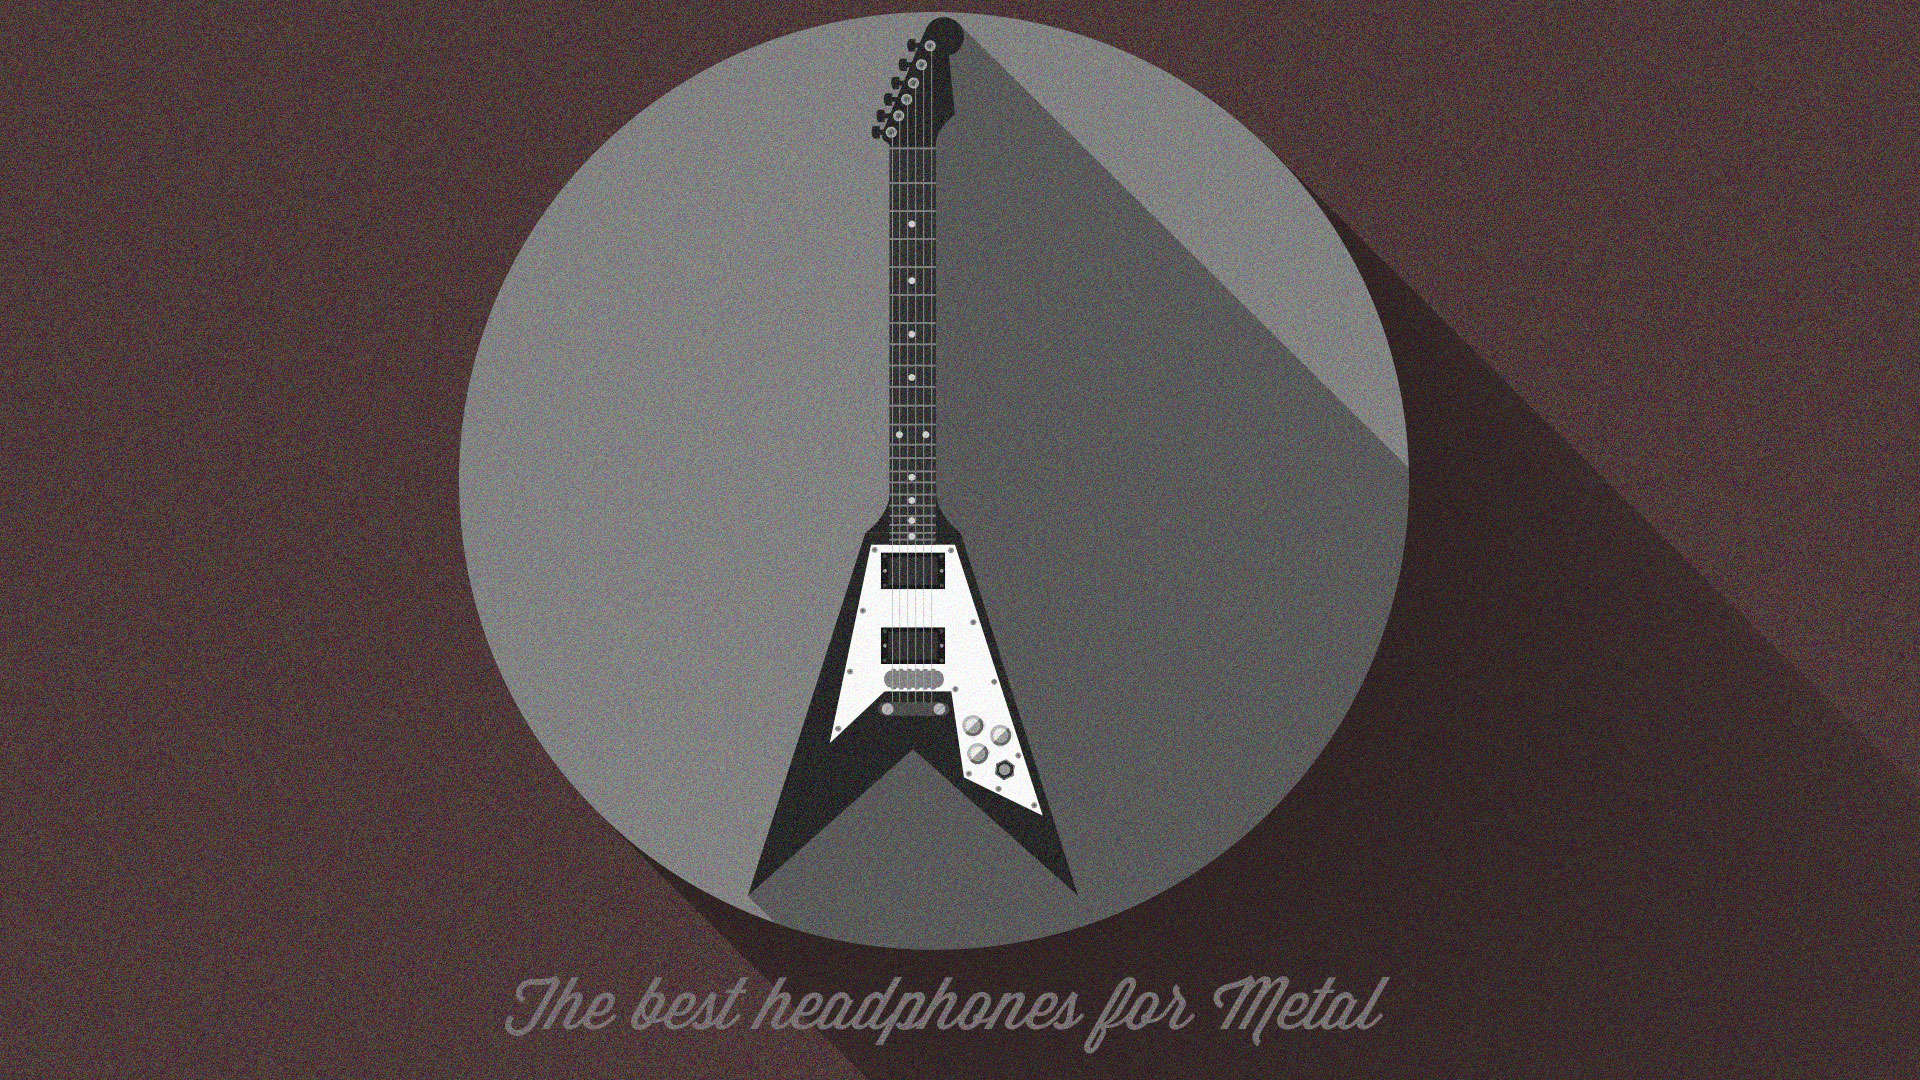 The Best Headphones for Metal